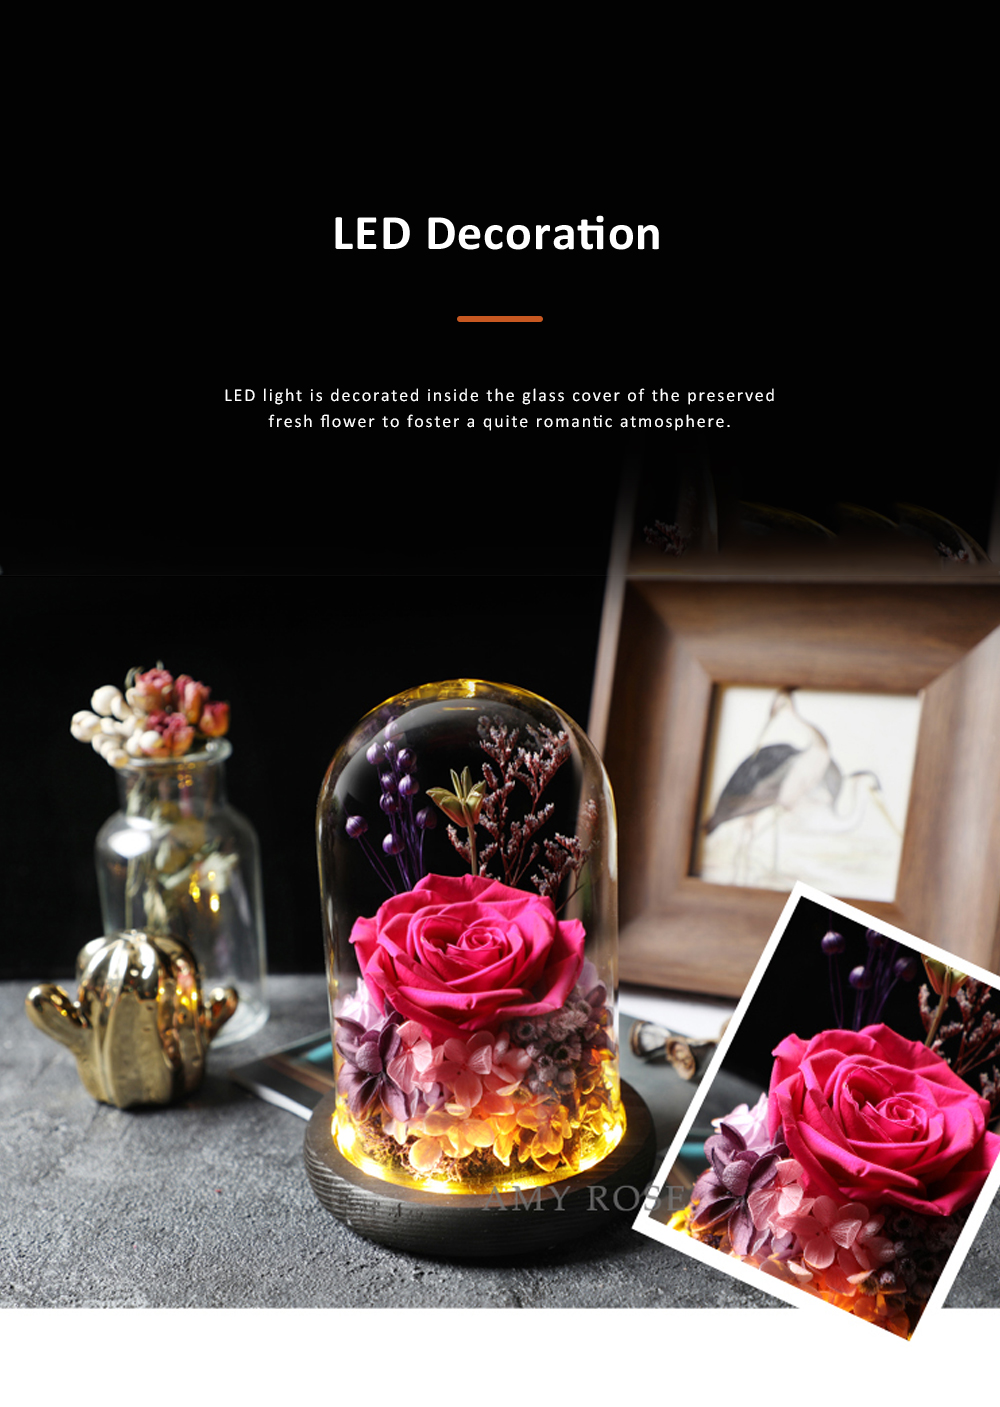 AMYROS Preserved Fresh Flower for Valentine's Day Christmas Dry Rose Bouquet Glass Covered Preserved Fresh Flower 2